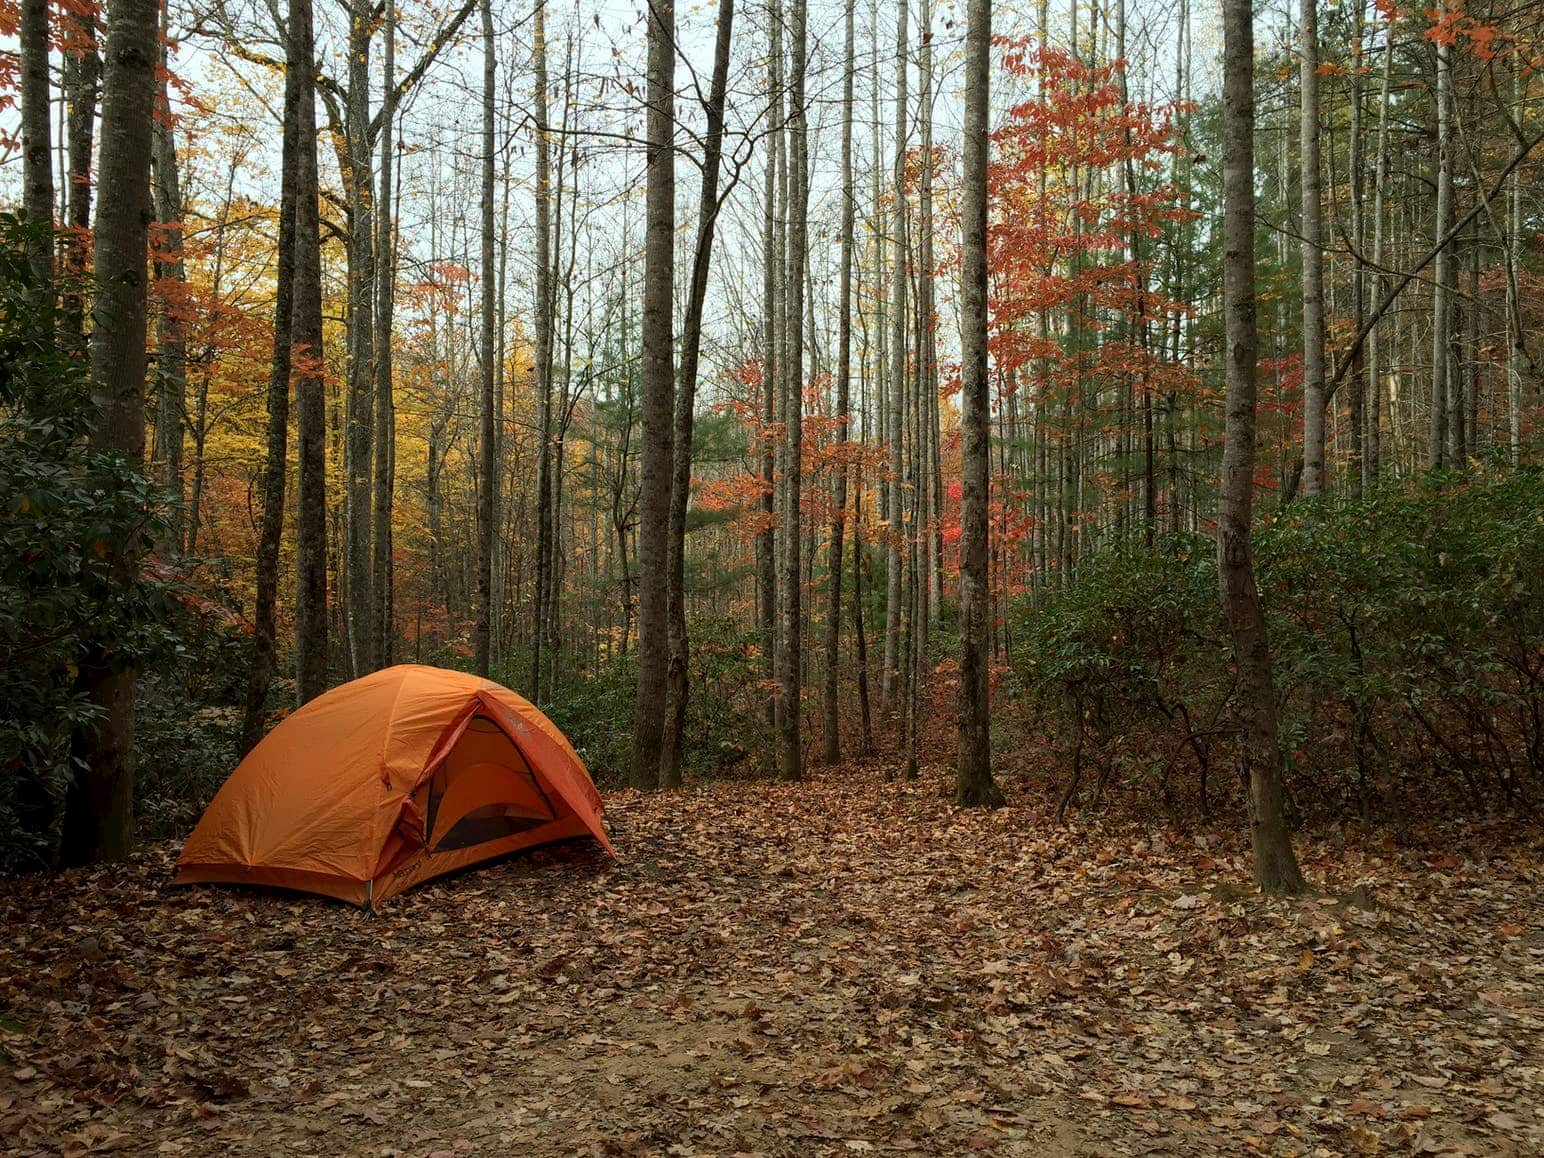 Orange tent set up inn a forested campsite surrounded by fall foliage at Mount Pisgah campground near Asheville, North Carolina.